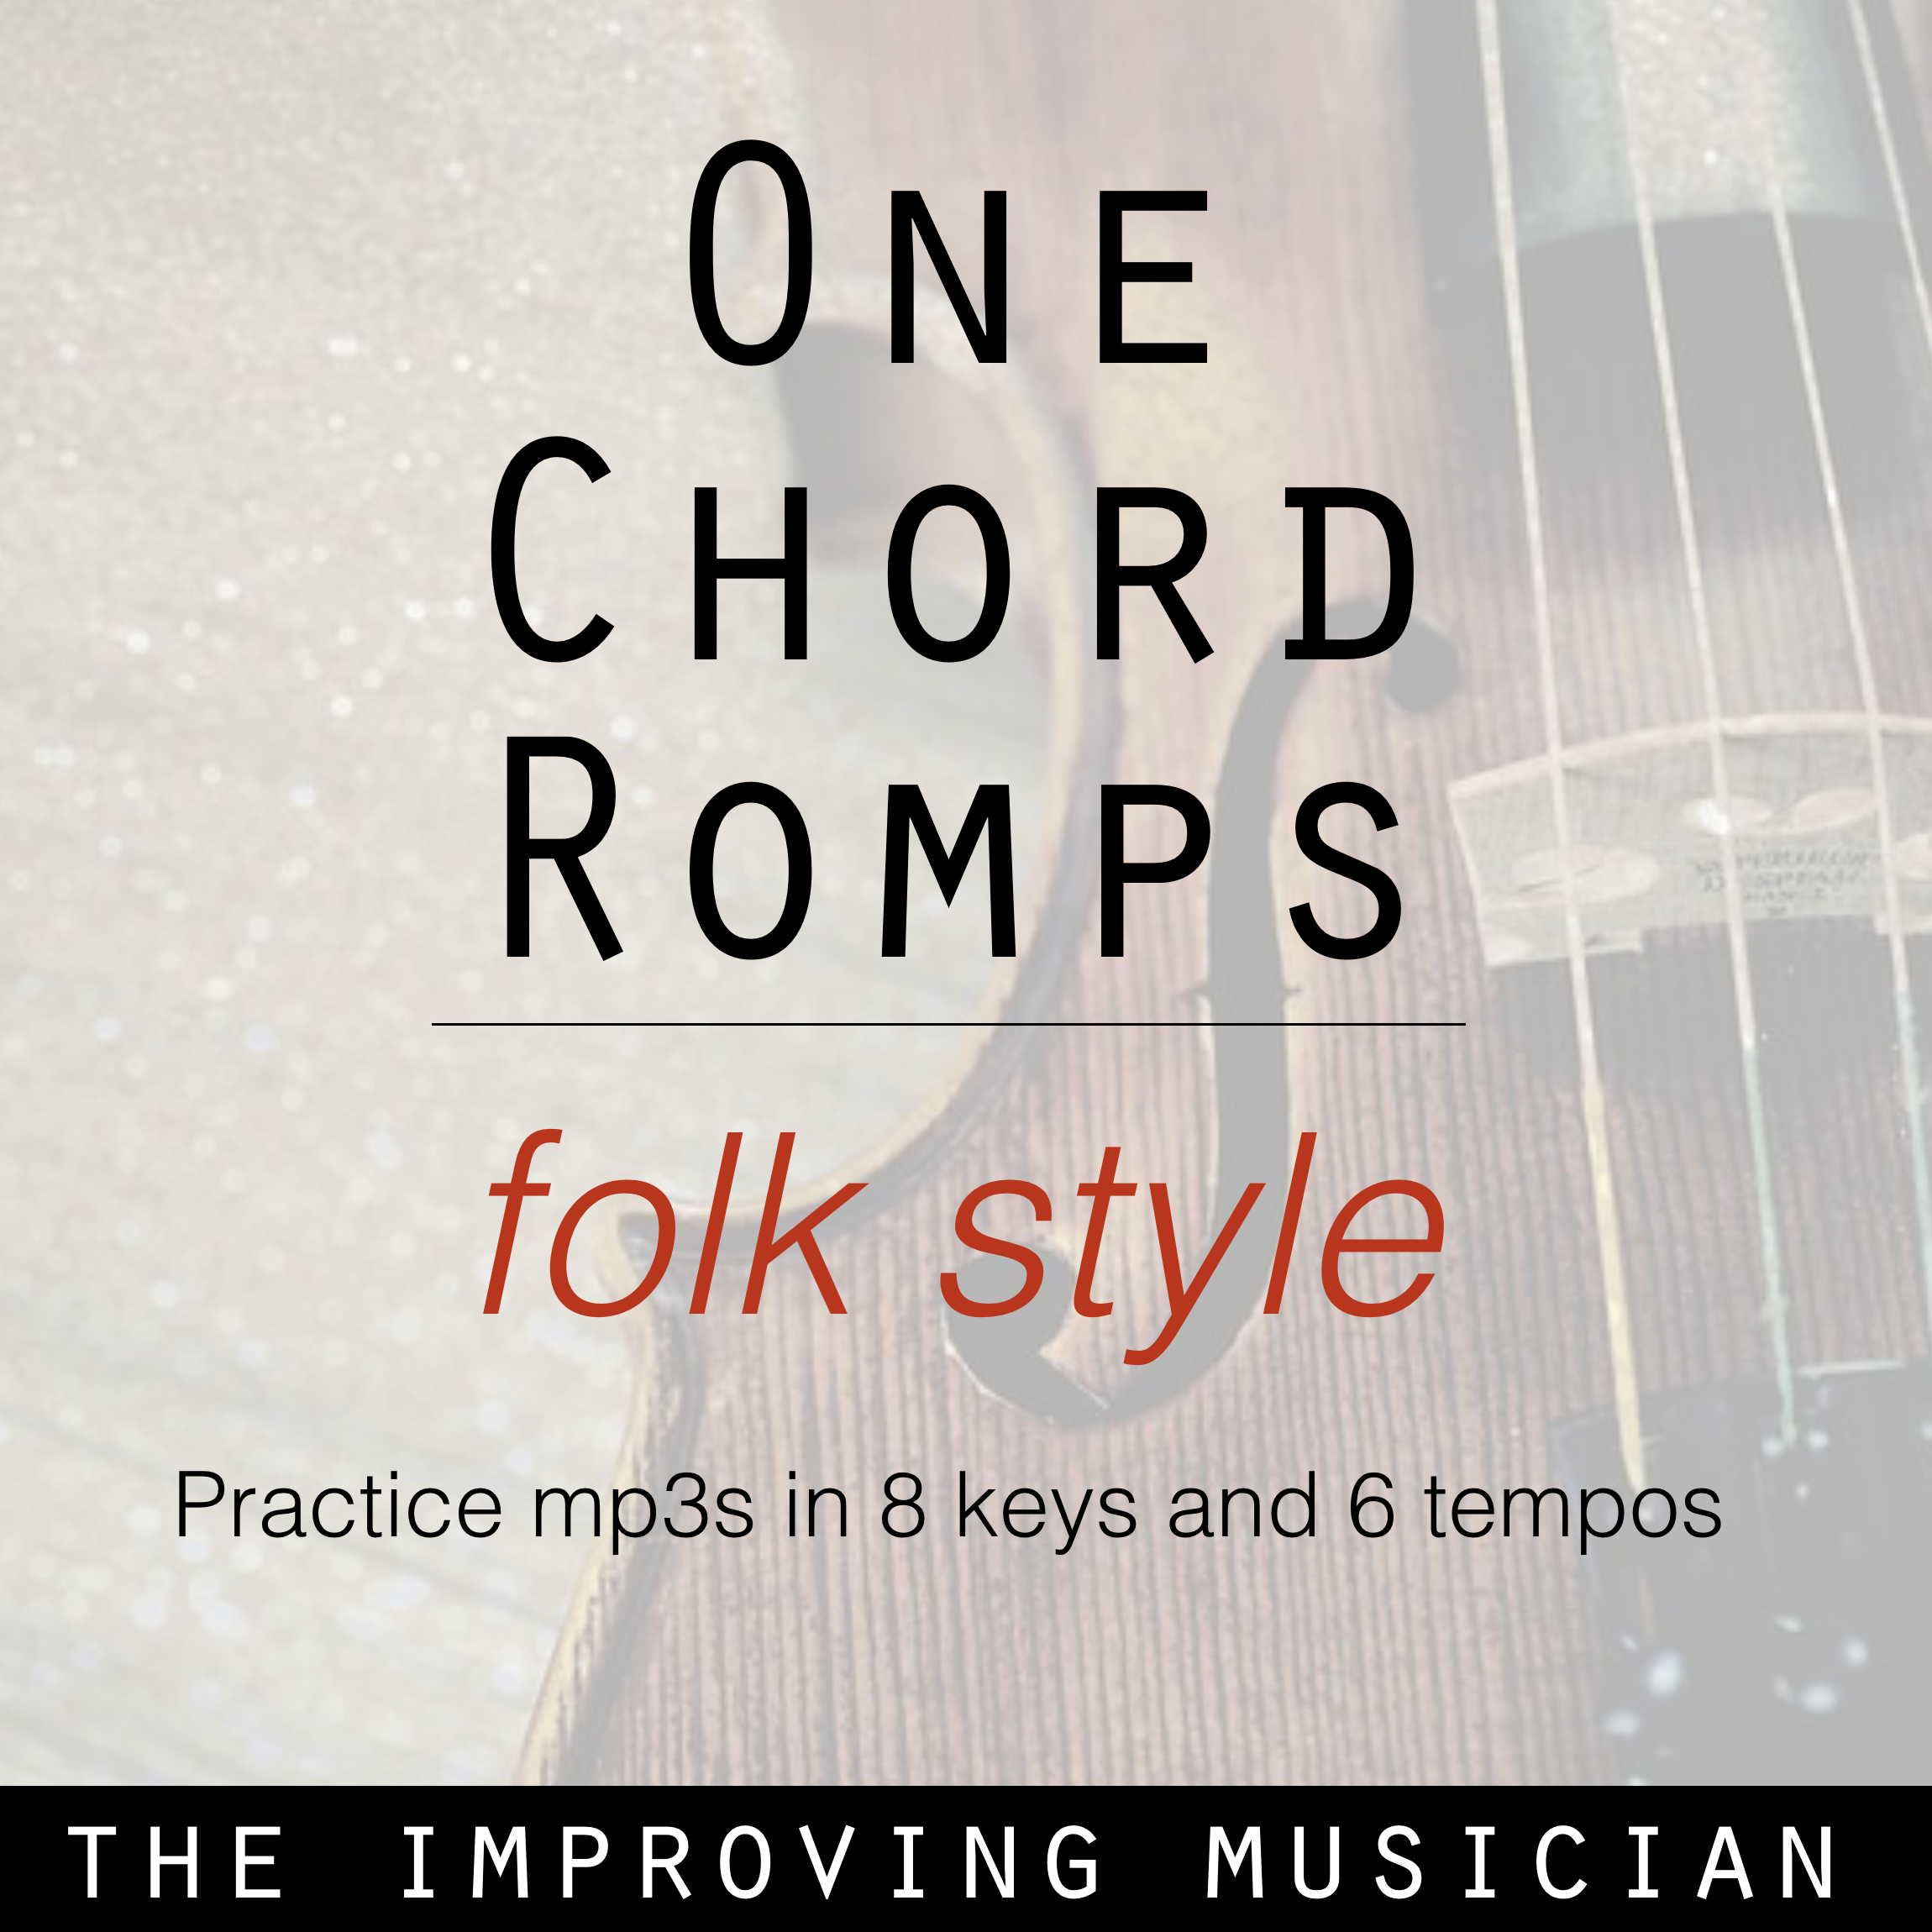 One Chord Romps